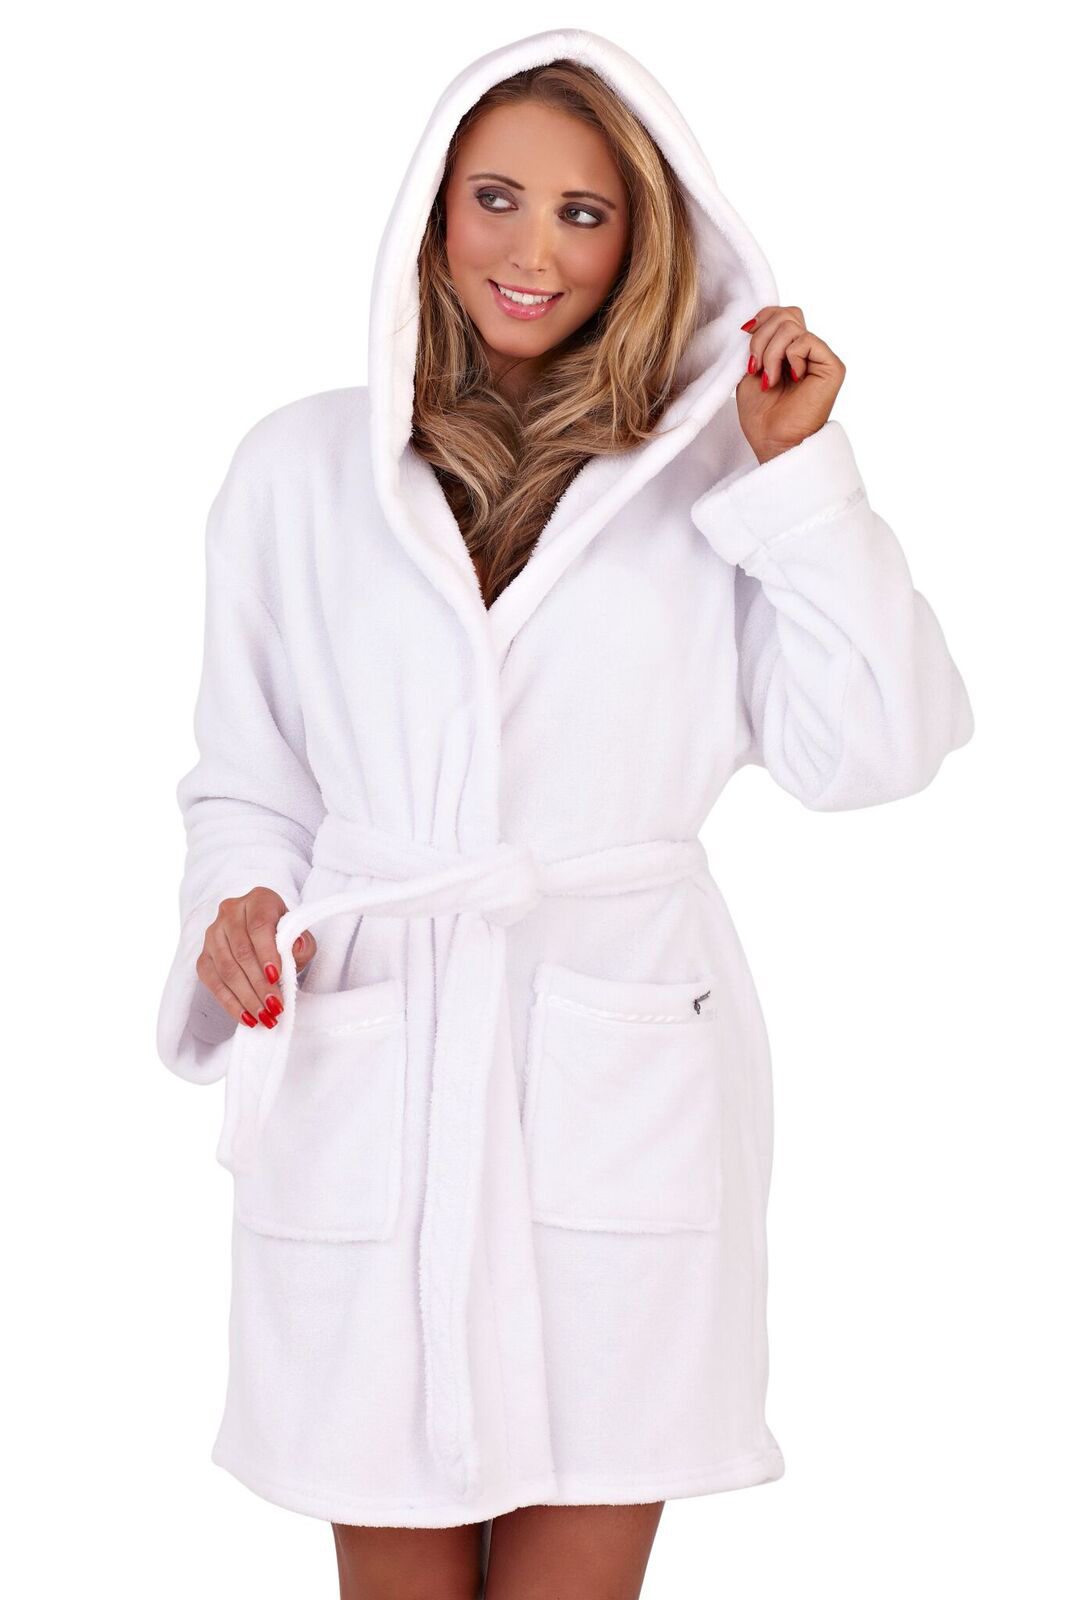 The one star was because my lavender robe appears as if it where a white robe with a tiny ting of lavender. I was expecting to receive something similar to the picture. Overall, I am satisfied because it is super soft and keeps me warm.